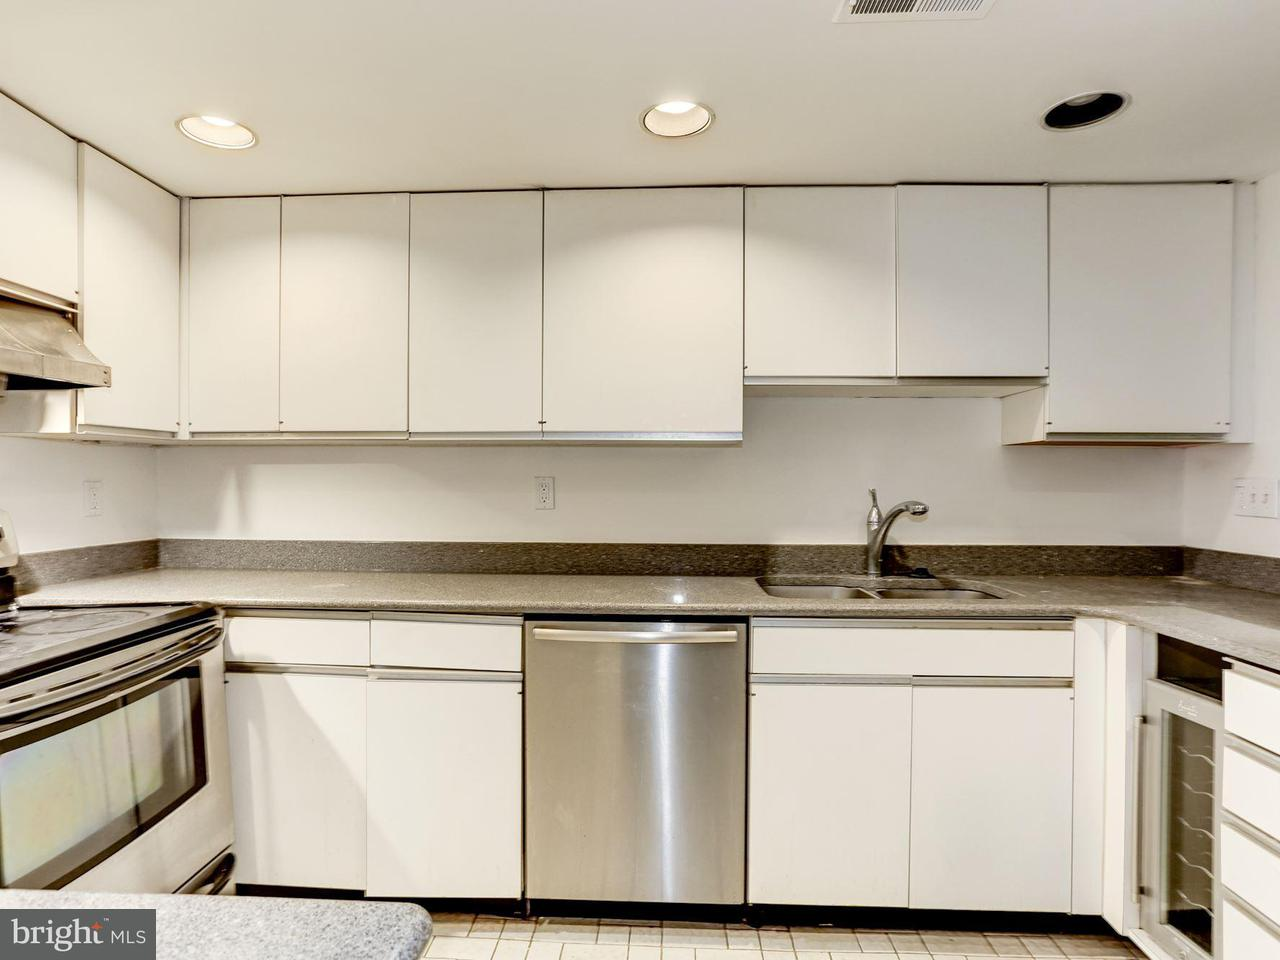 Additional photo for property listing at 308 Capitol St Ne #11 308 Capitol St Ne #11 Washington, 哥倫比亞特區 20003 美國